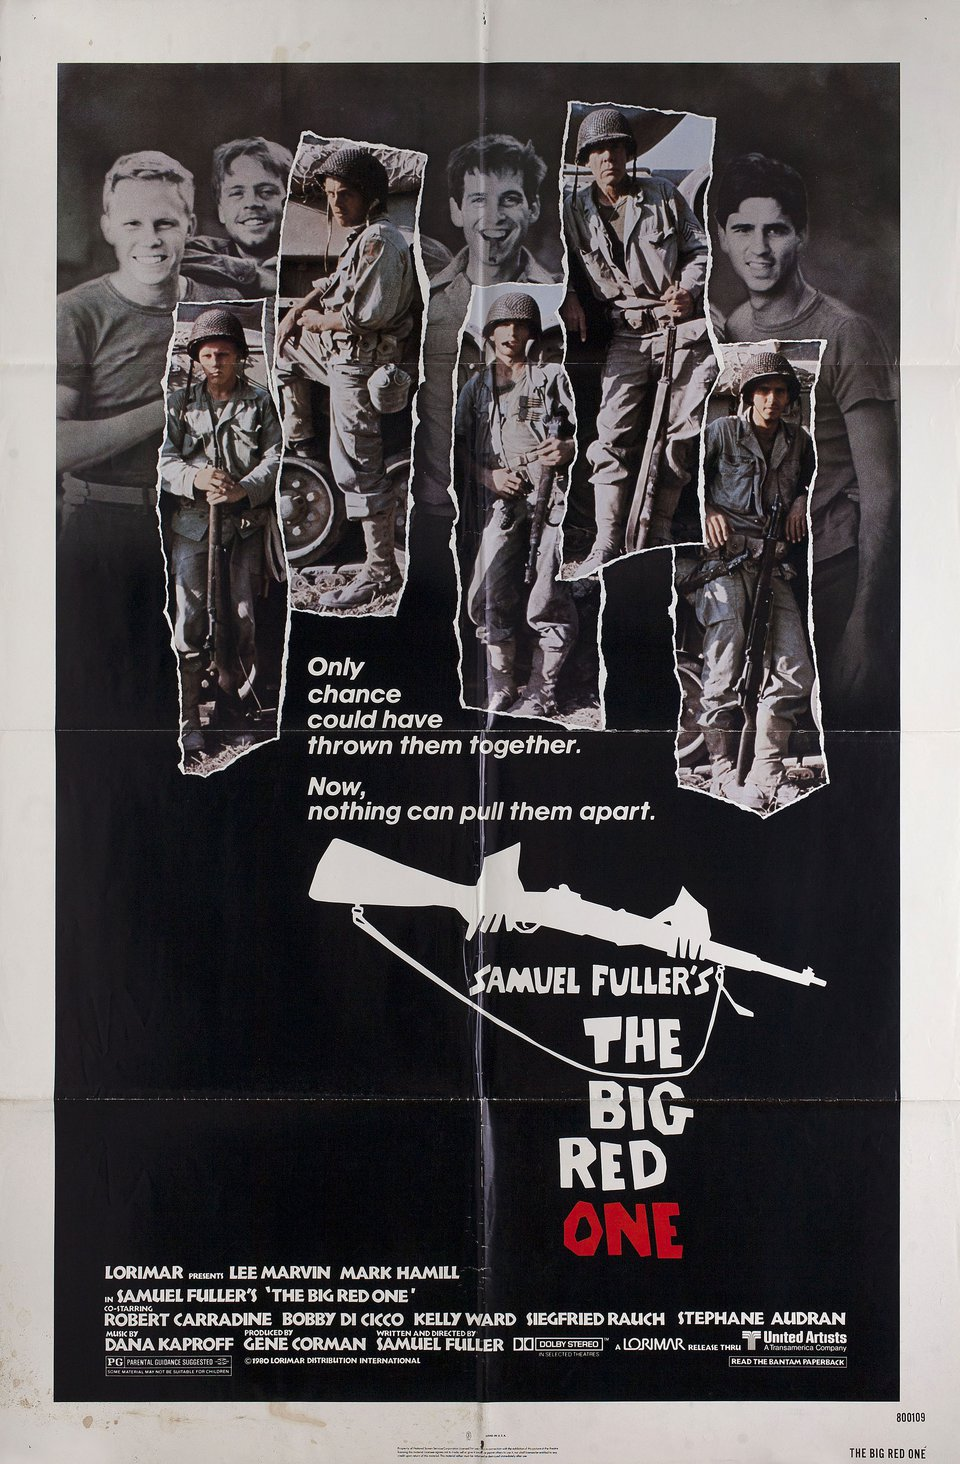 The Big Red One 1980 U.S. One Sheet Poster